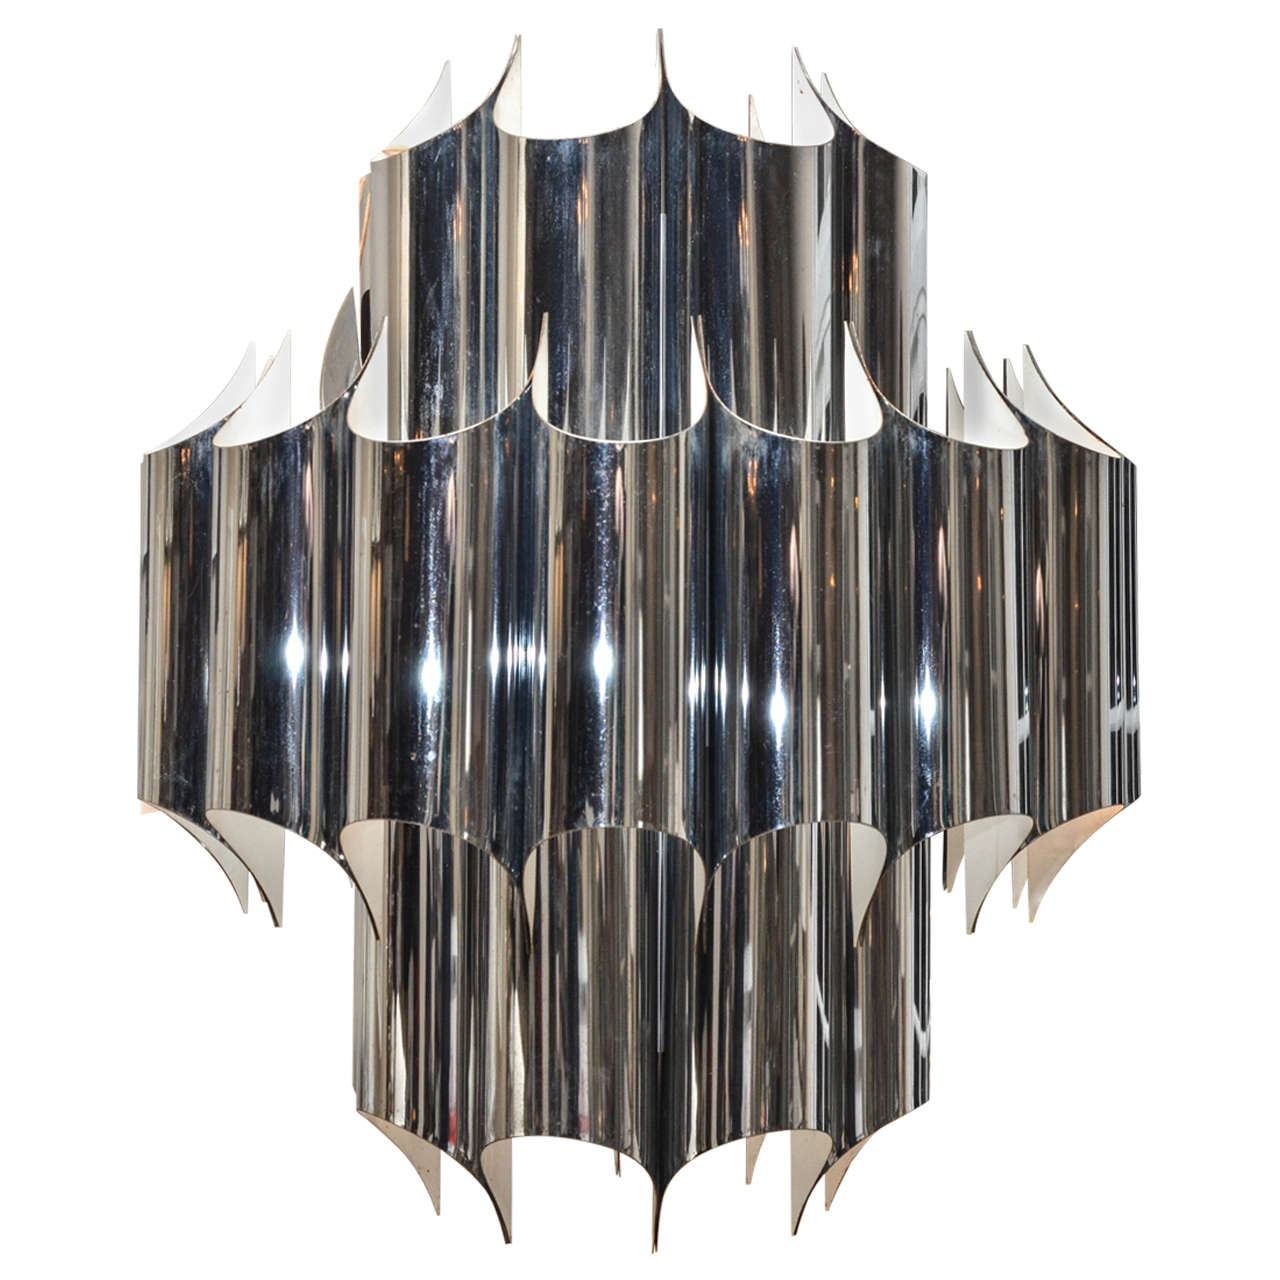 Fabulous vintage chrome and plated steel chandelier by robert fabulous vintage chrome and plated steel chandelier by robert sonneman at 1stdibs arubaitofo Gallery